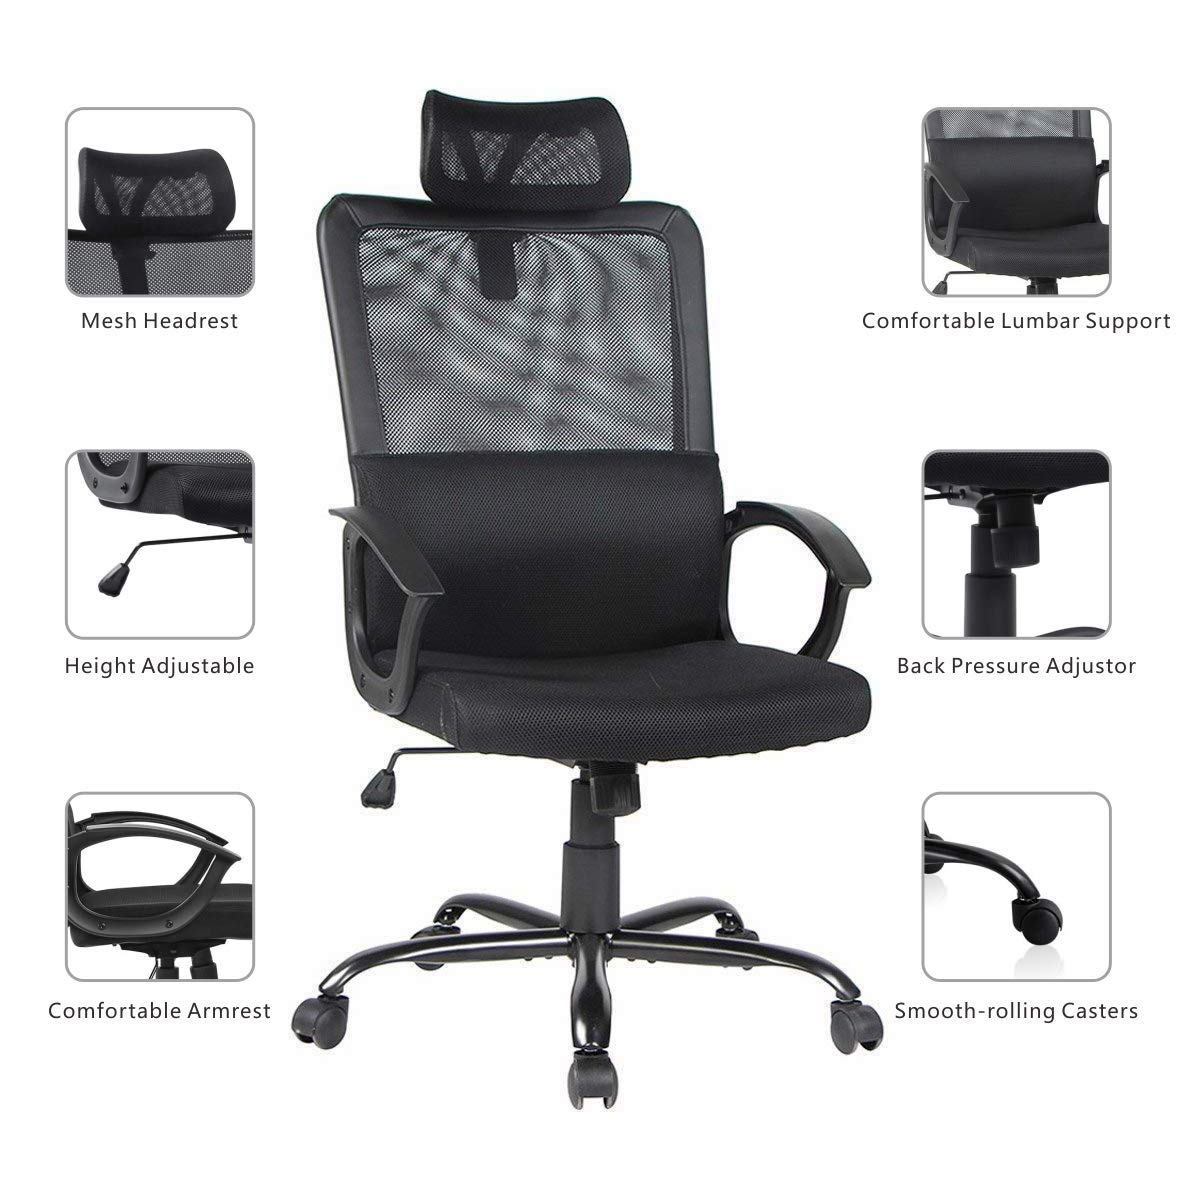 Smugdesk Ergonomic Office Chair High Back Mesh Office Chair Adjustable Headrest Computer Desk Chair for Lumbar Support by Smugdesk (Image #2)